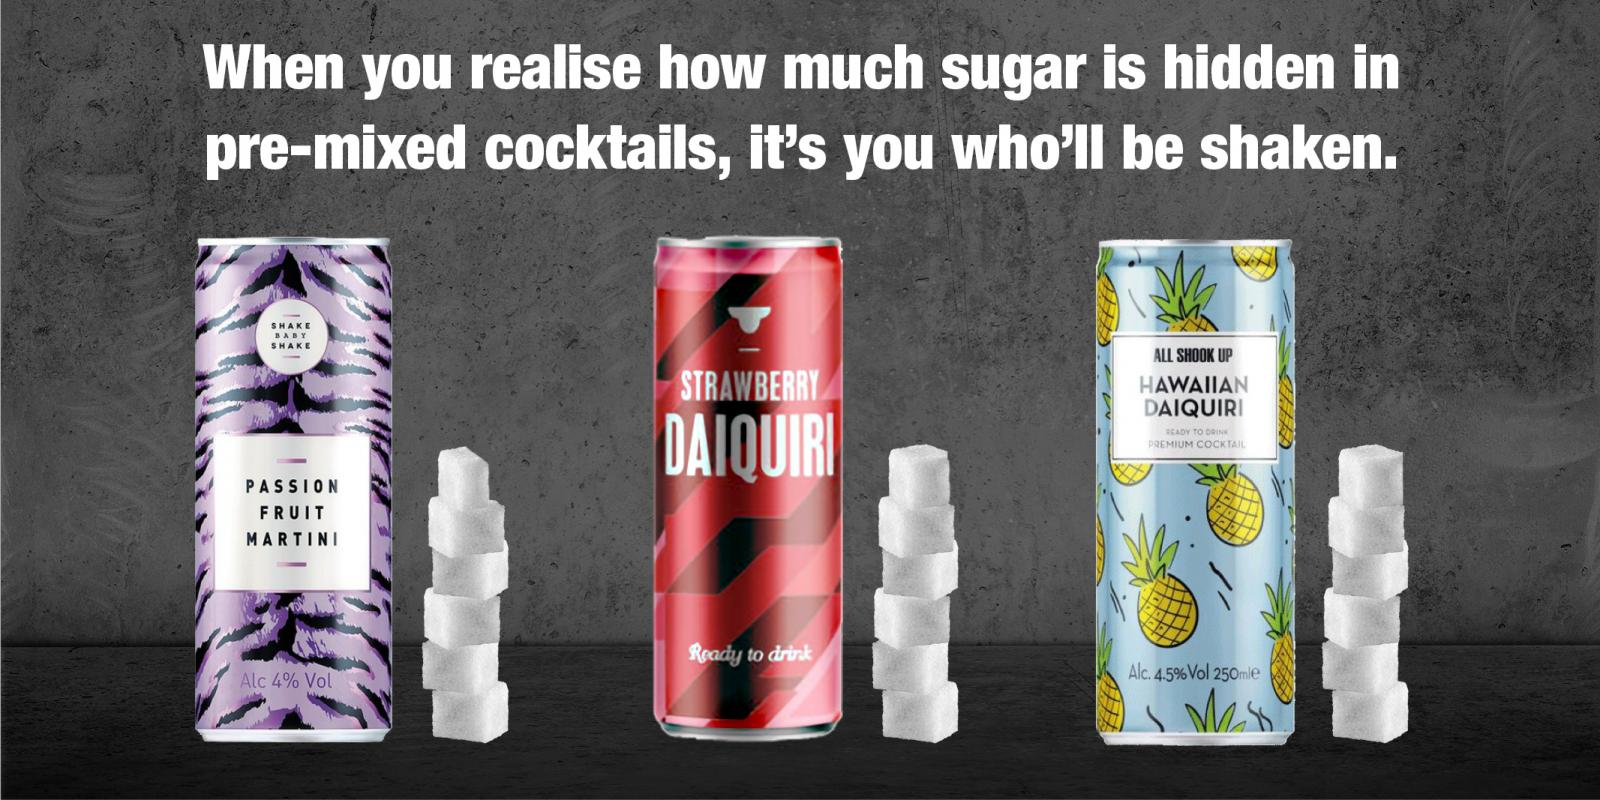 Image credit: Action on Sugar